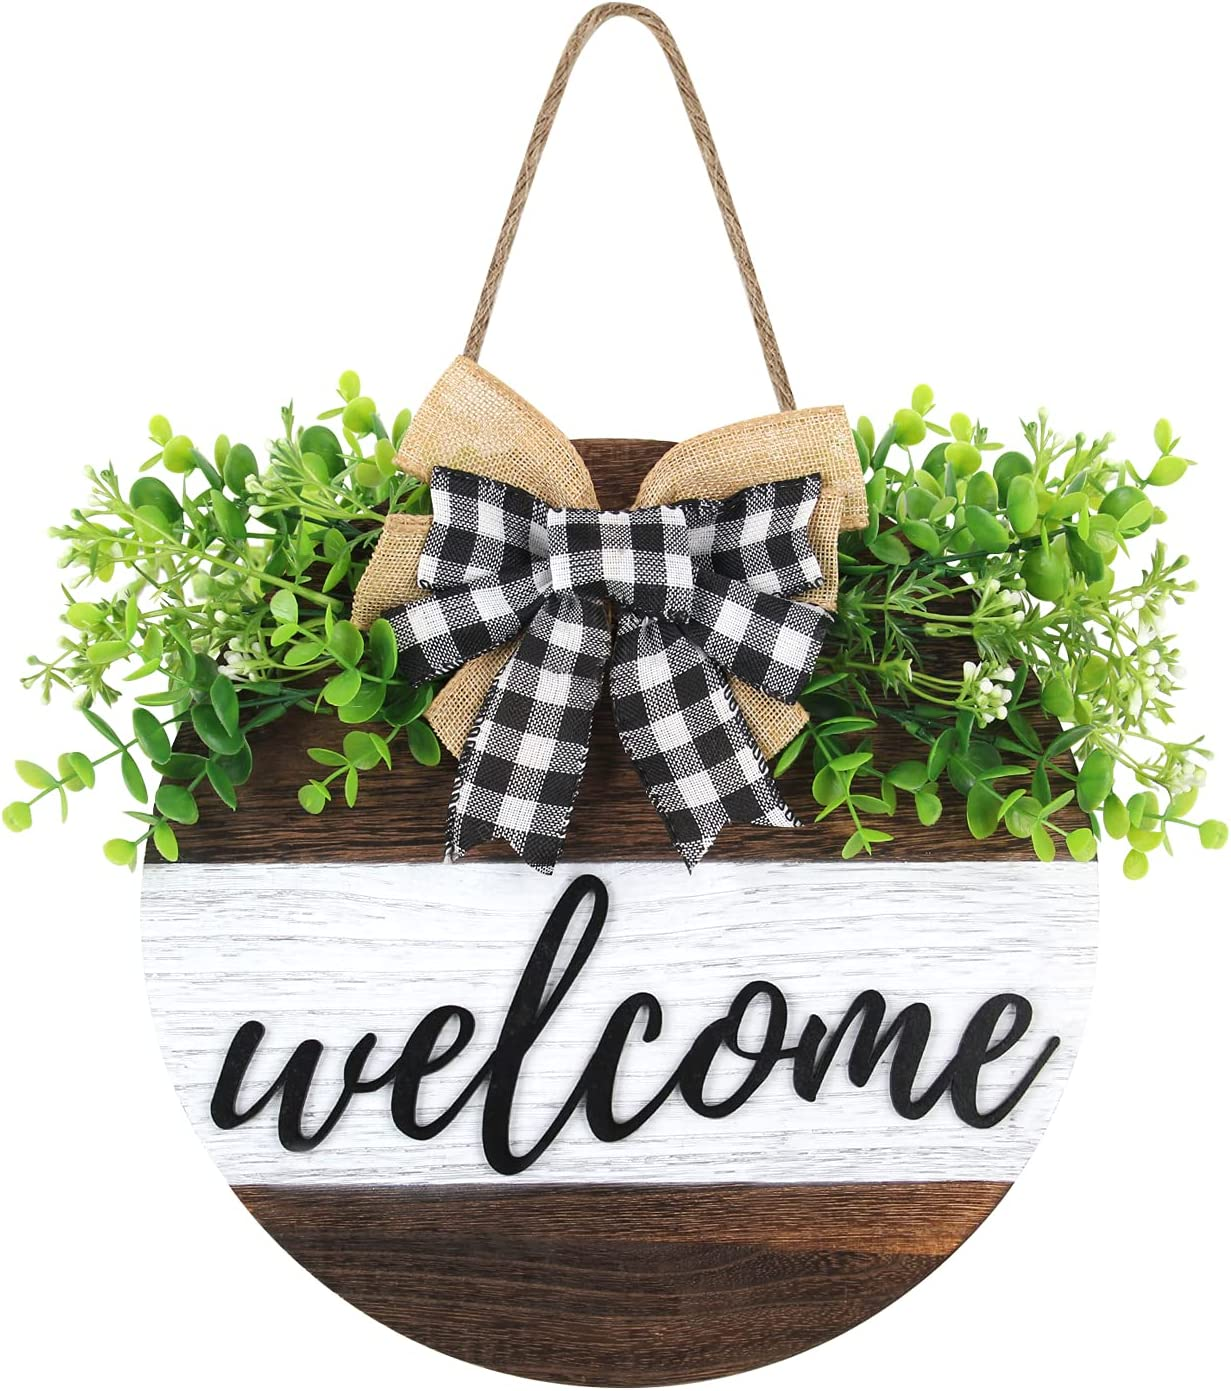 Welcome Sign Front Door Wall Decor, Round Wooden Sign Hanging Farmhouse Porch Front Decoration, Rustic Handmade Art Design with Burlap Bow for Spring Summer Bathroom Home Outdoor(Brown White)